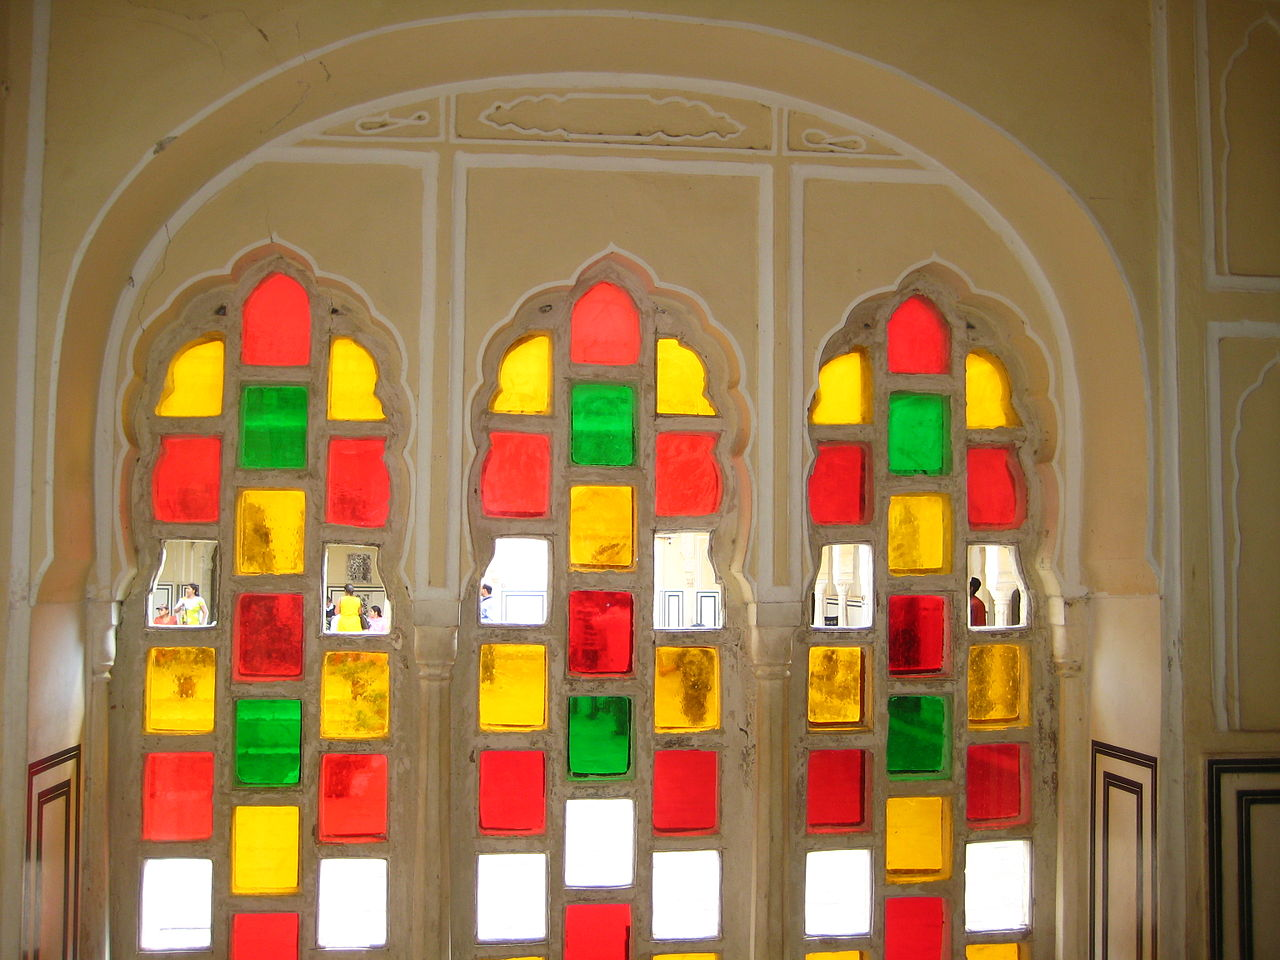 Hawa Mahal, Jaipur, Architecture, Maharaja Sawai Pratap Singh, Lal Chand Ustad, Stained Glass